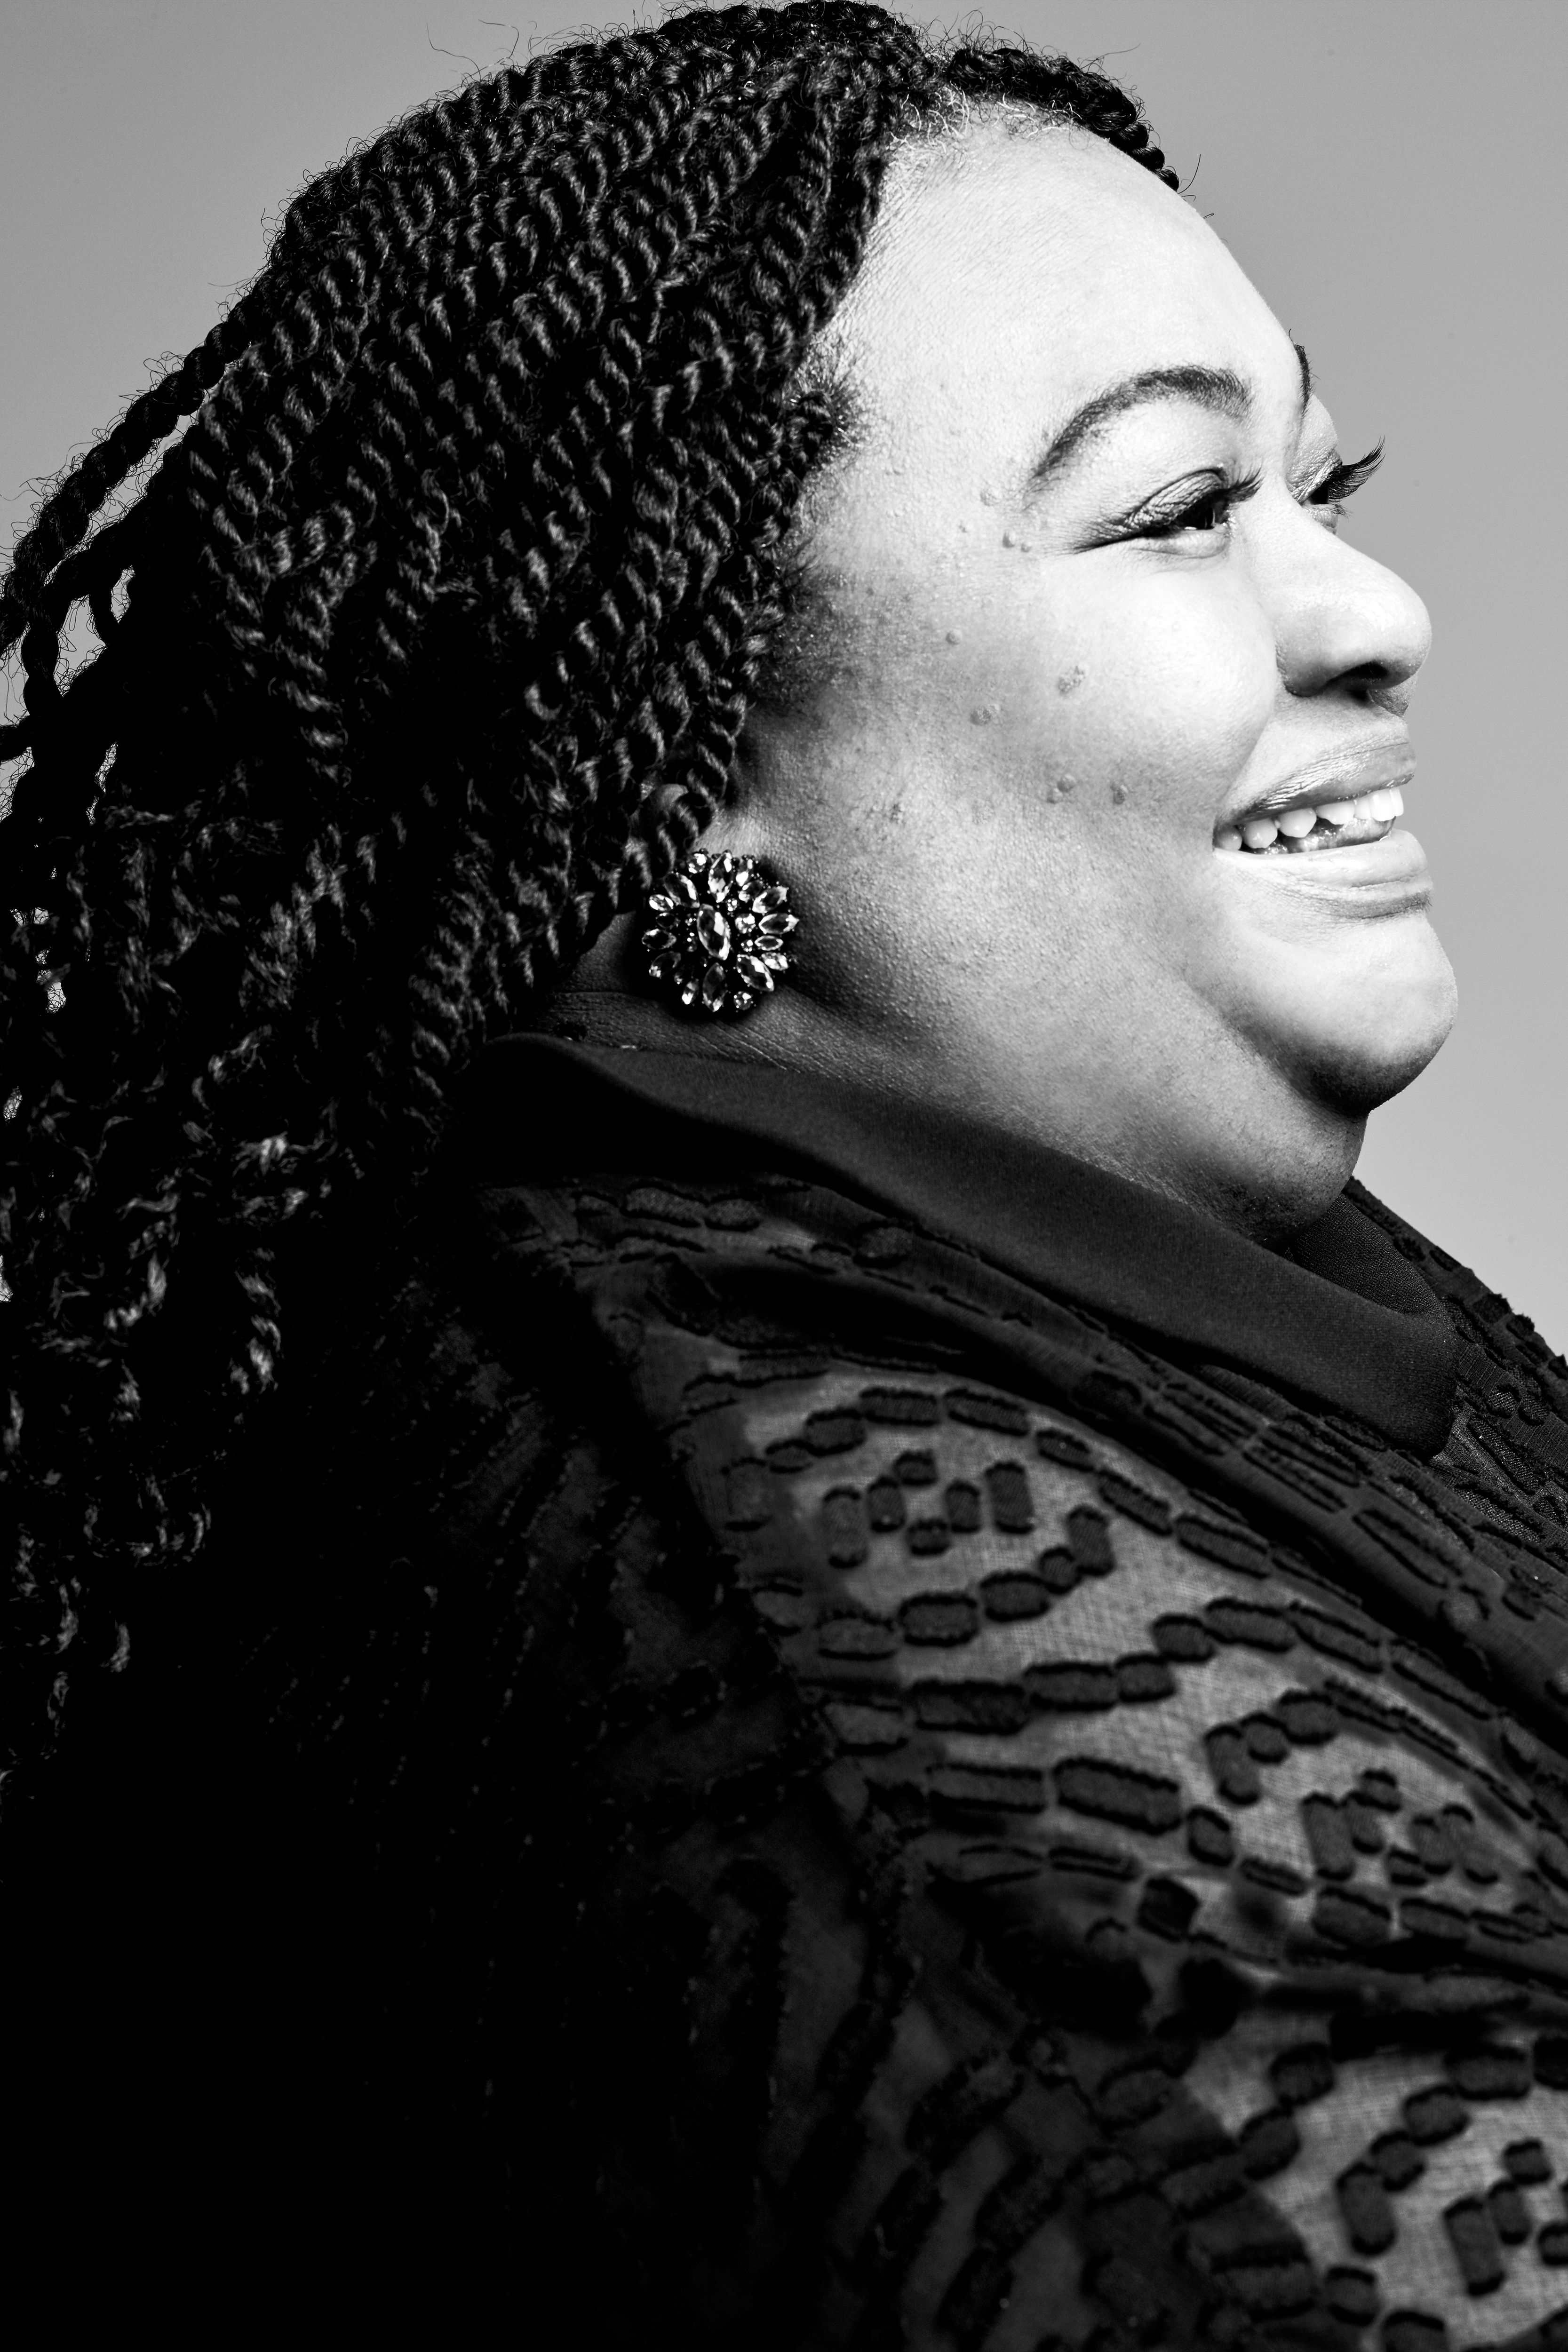 """<p><strong data-redactor-tag=""""strong"""">Crystal R. Emery, 56, producer and director of&nbsp&#x3B;</strong><strong data-redactor-tag=""""strong""""><i data-redactor-tag=""""i"""">Black Women in Medicine</i>, CEO and Founder of&nbsp&#x3B;<a href=""""https://urutherighttobe.org/"""" target=""""_blank"""" data-tracking-id=""""recirc-text-link"""">URU, The Right to Be, Inc.</a></strong><span class=""""redactor-invisible-space"""" data-verified=""""redactor"""" data-redactor-tag=""""span"""" data-redactor-class=""""redactor-invisible-space""""></span><br></p><p>""""I'm celebrating the courage of not being defined by other people's perspective of who I should be and what I am capable of. Regardless of limited mobility, I am energy in motion. As for my film, only two percent of all U.S. doctors are black women and I'm ready to change the face of STEM. Women are natural healers and it's&nbsp&#x3B;time for <i data-redactor-tag=""""i"""">herstory</i> to be celebrated."""" &nbsp&#x3B;&nbsp&#x3B;</p><p><strong data-redactor-tag=""""strong"""" data-verified=""""redactor""""><em data-redactor-tag=""""em"""" data-verified=""""redactor"""">Wardrobe:&nbsp&#x3B;<span class=""""redactor-invisible-space"""" data-verified=""""redactor"""" data-redactor-tag=""""span"""" data-redactor-class=""""redactor-invisible-space""""></span></em></strong><span class=""""redactor-invisible-space"""" data-verified=""""redactor"""" data-redactor-tag=""""span"""" data-redactor-class=""""redactor-invisible-space""""><em data-redactor-tag=""""em"""" data-verified=""""redactor"""">Dress designed by Barbara Parker</em></span></p>"""